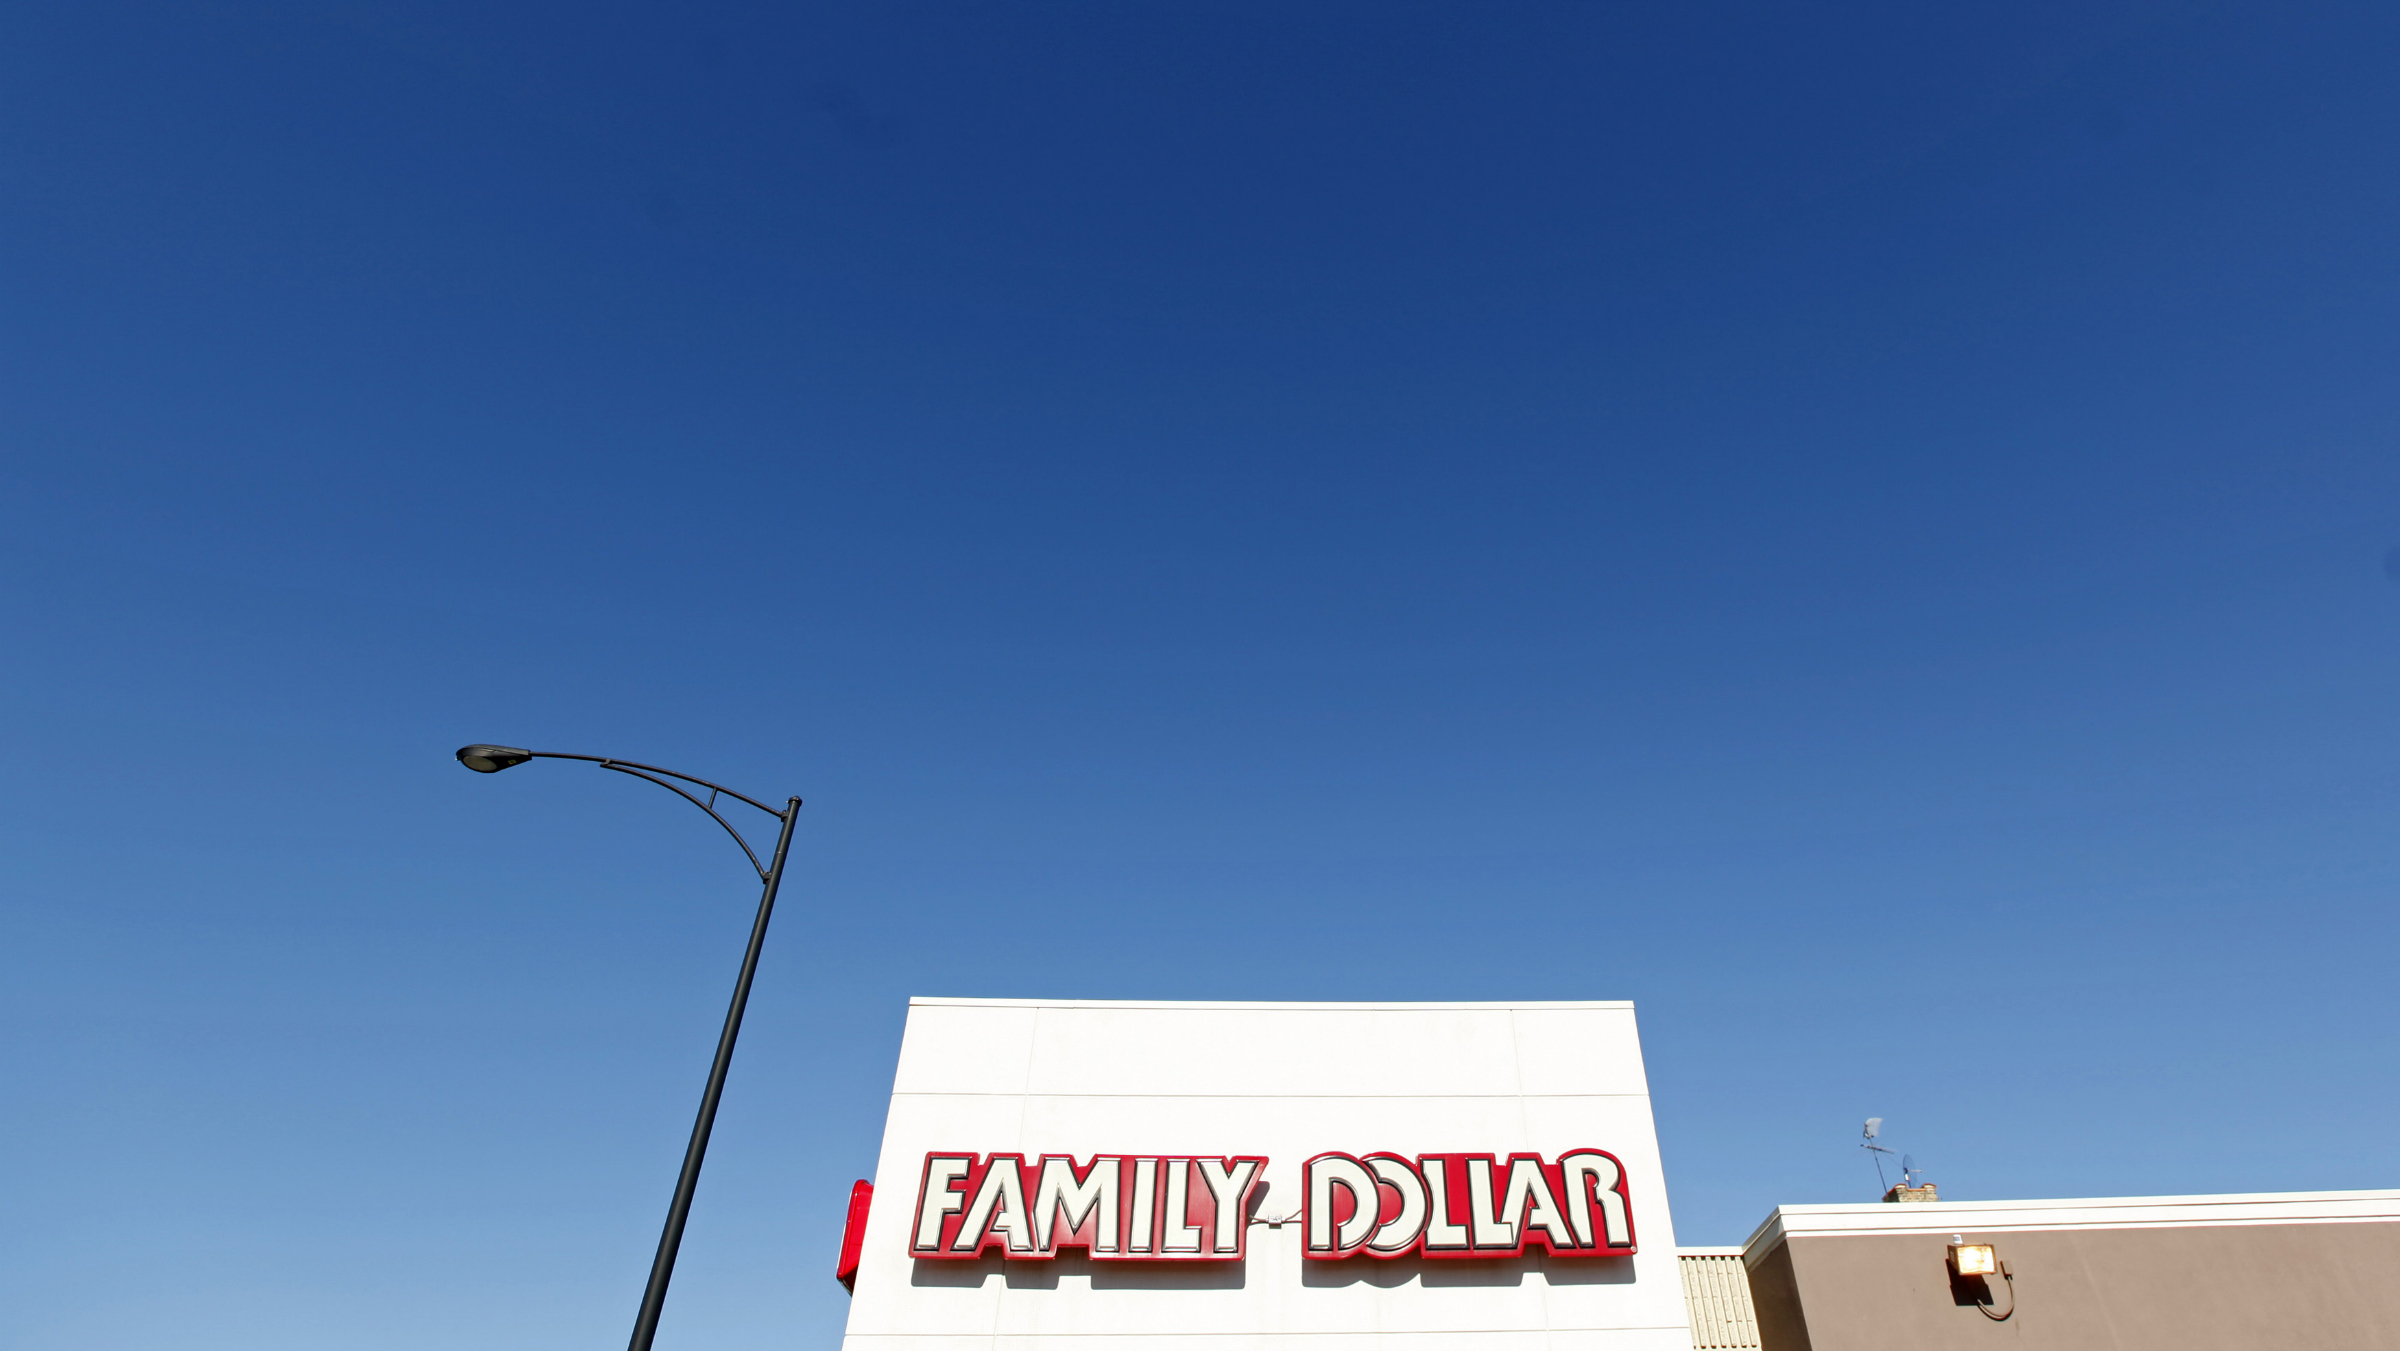 A Family Dollar store.